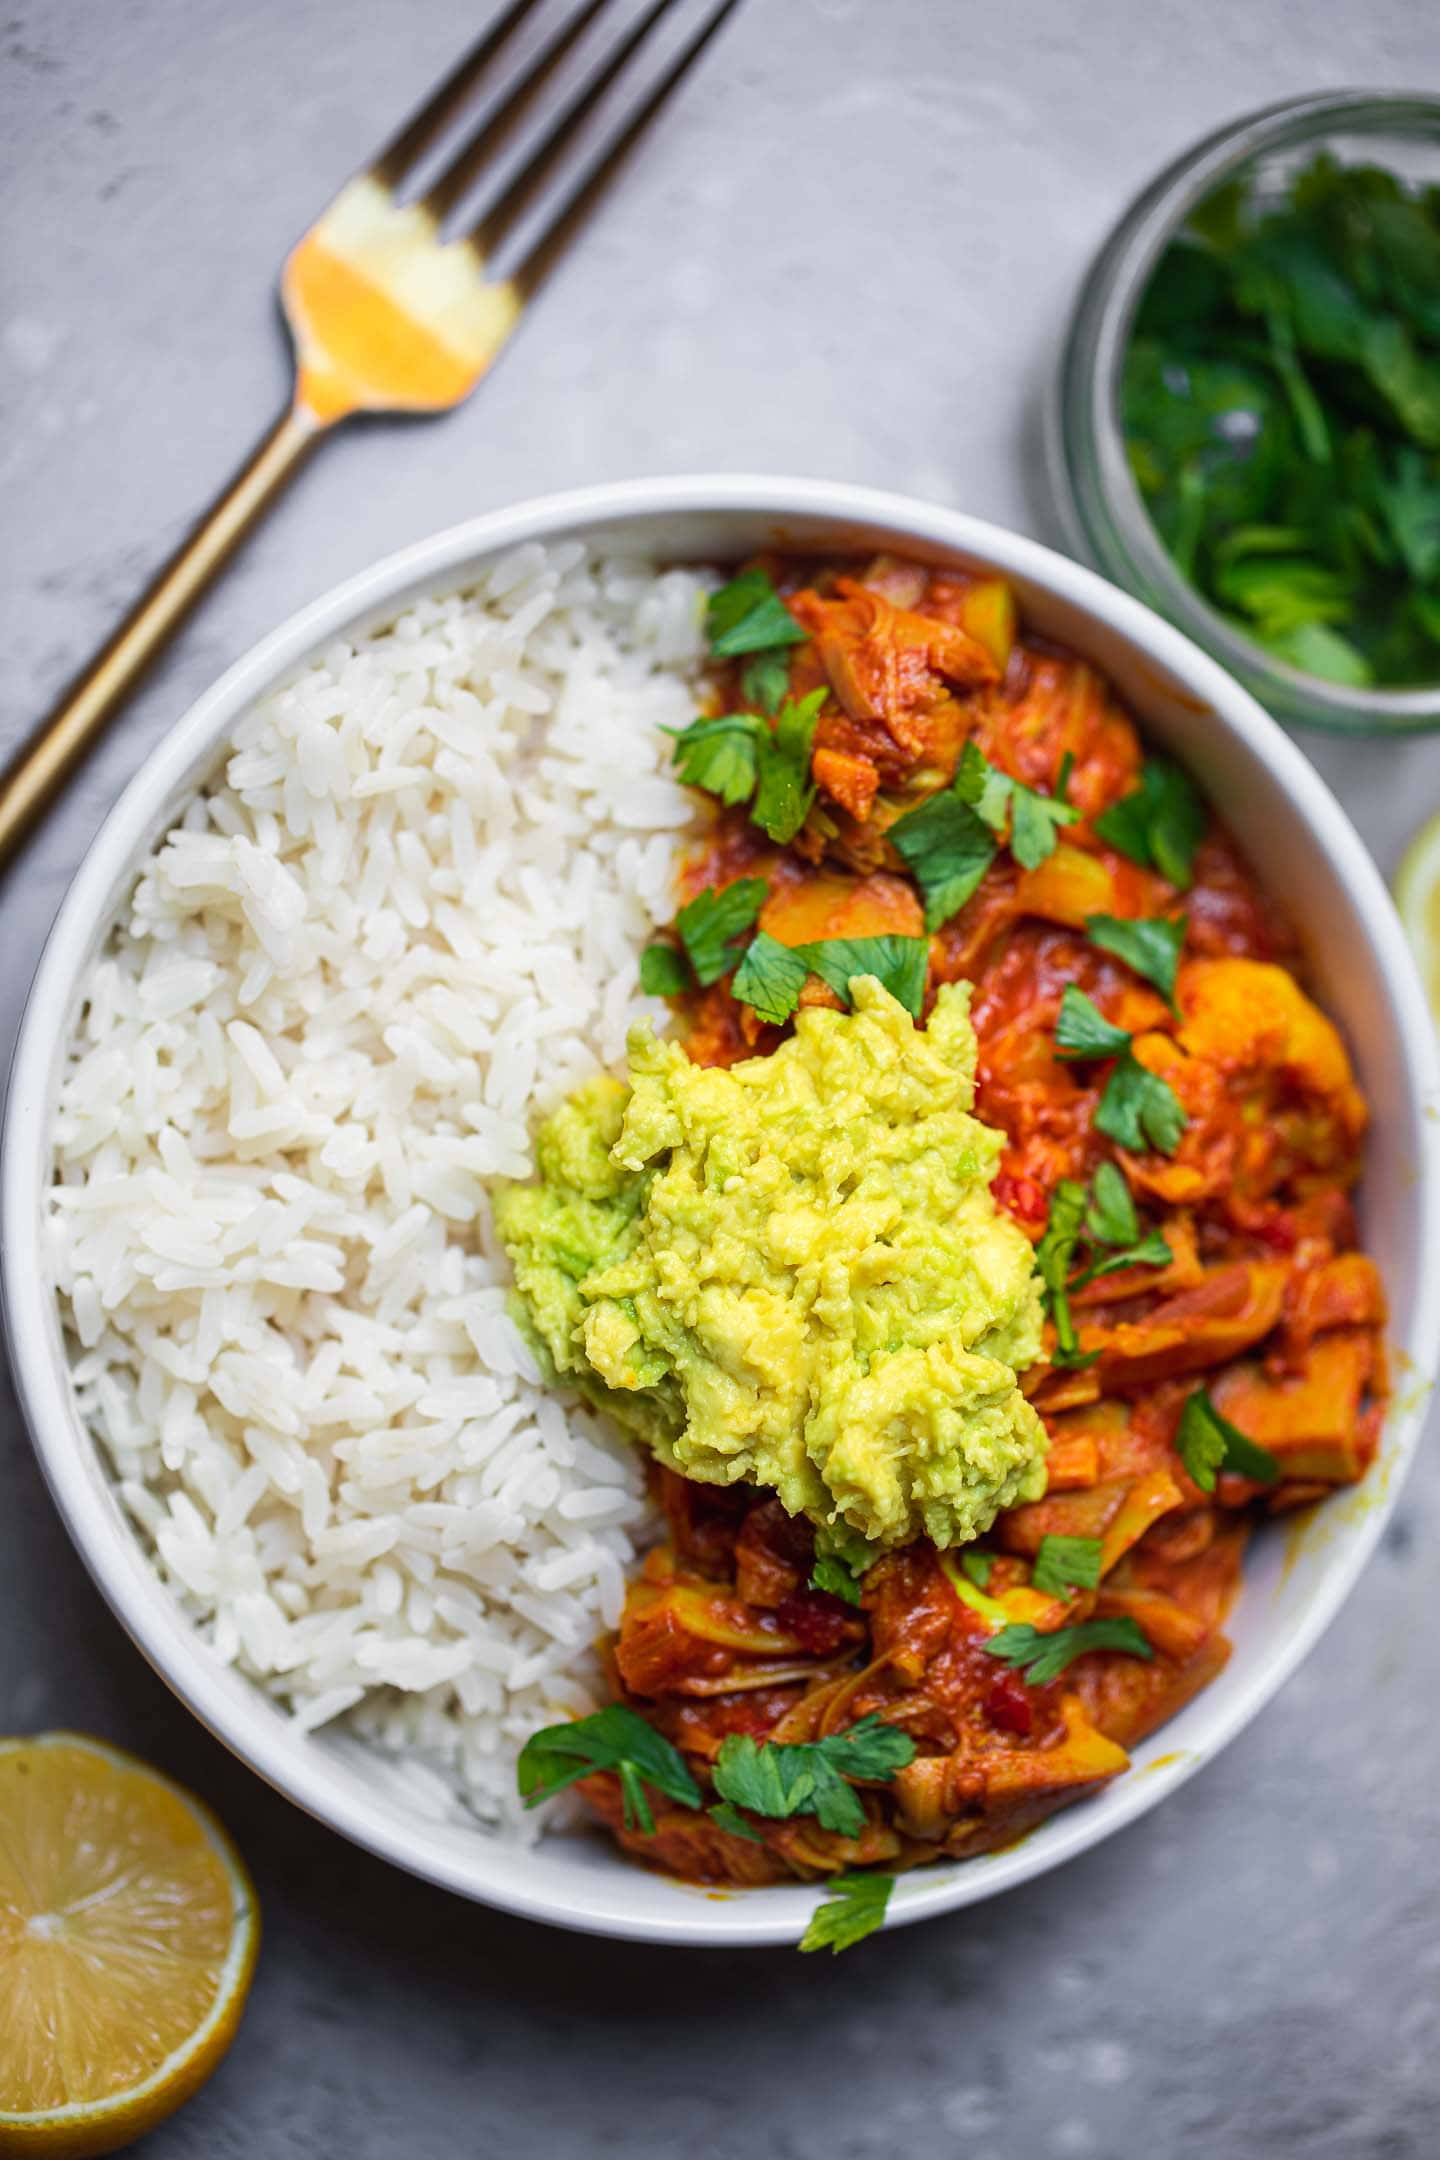 Jackfruit curry with avocado and rice in a bowl